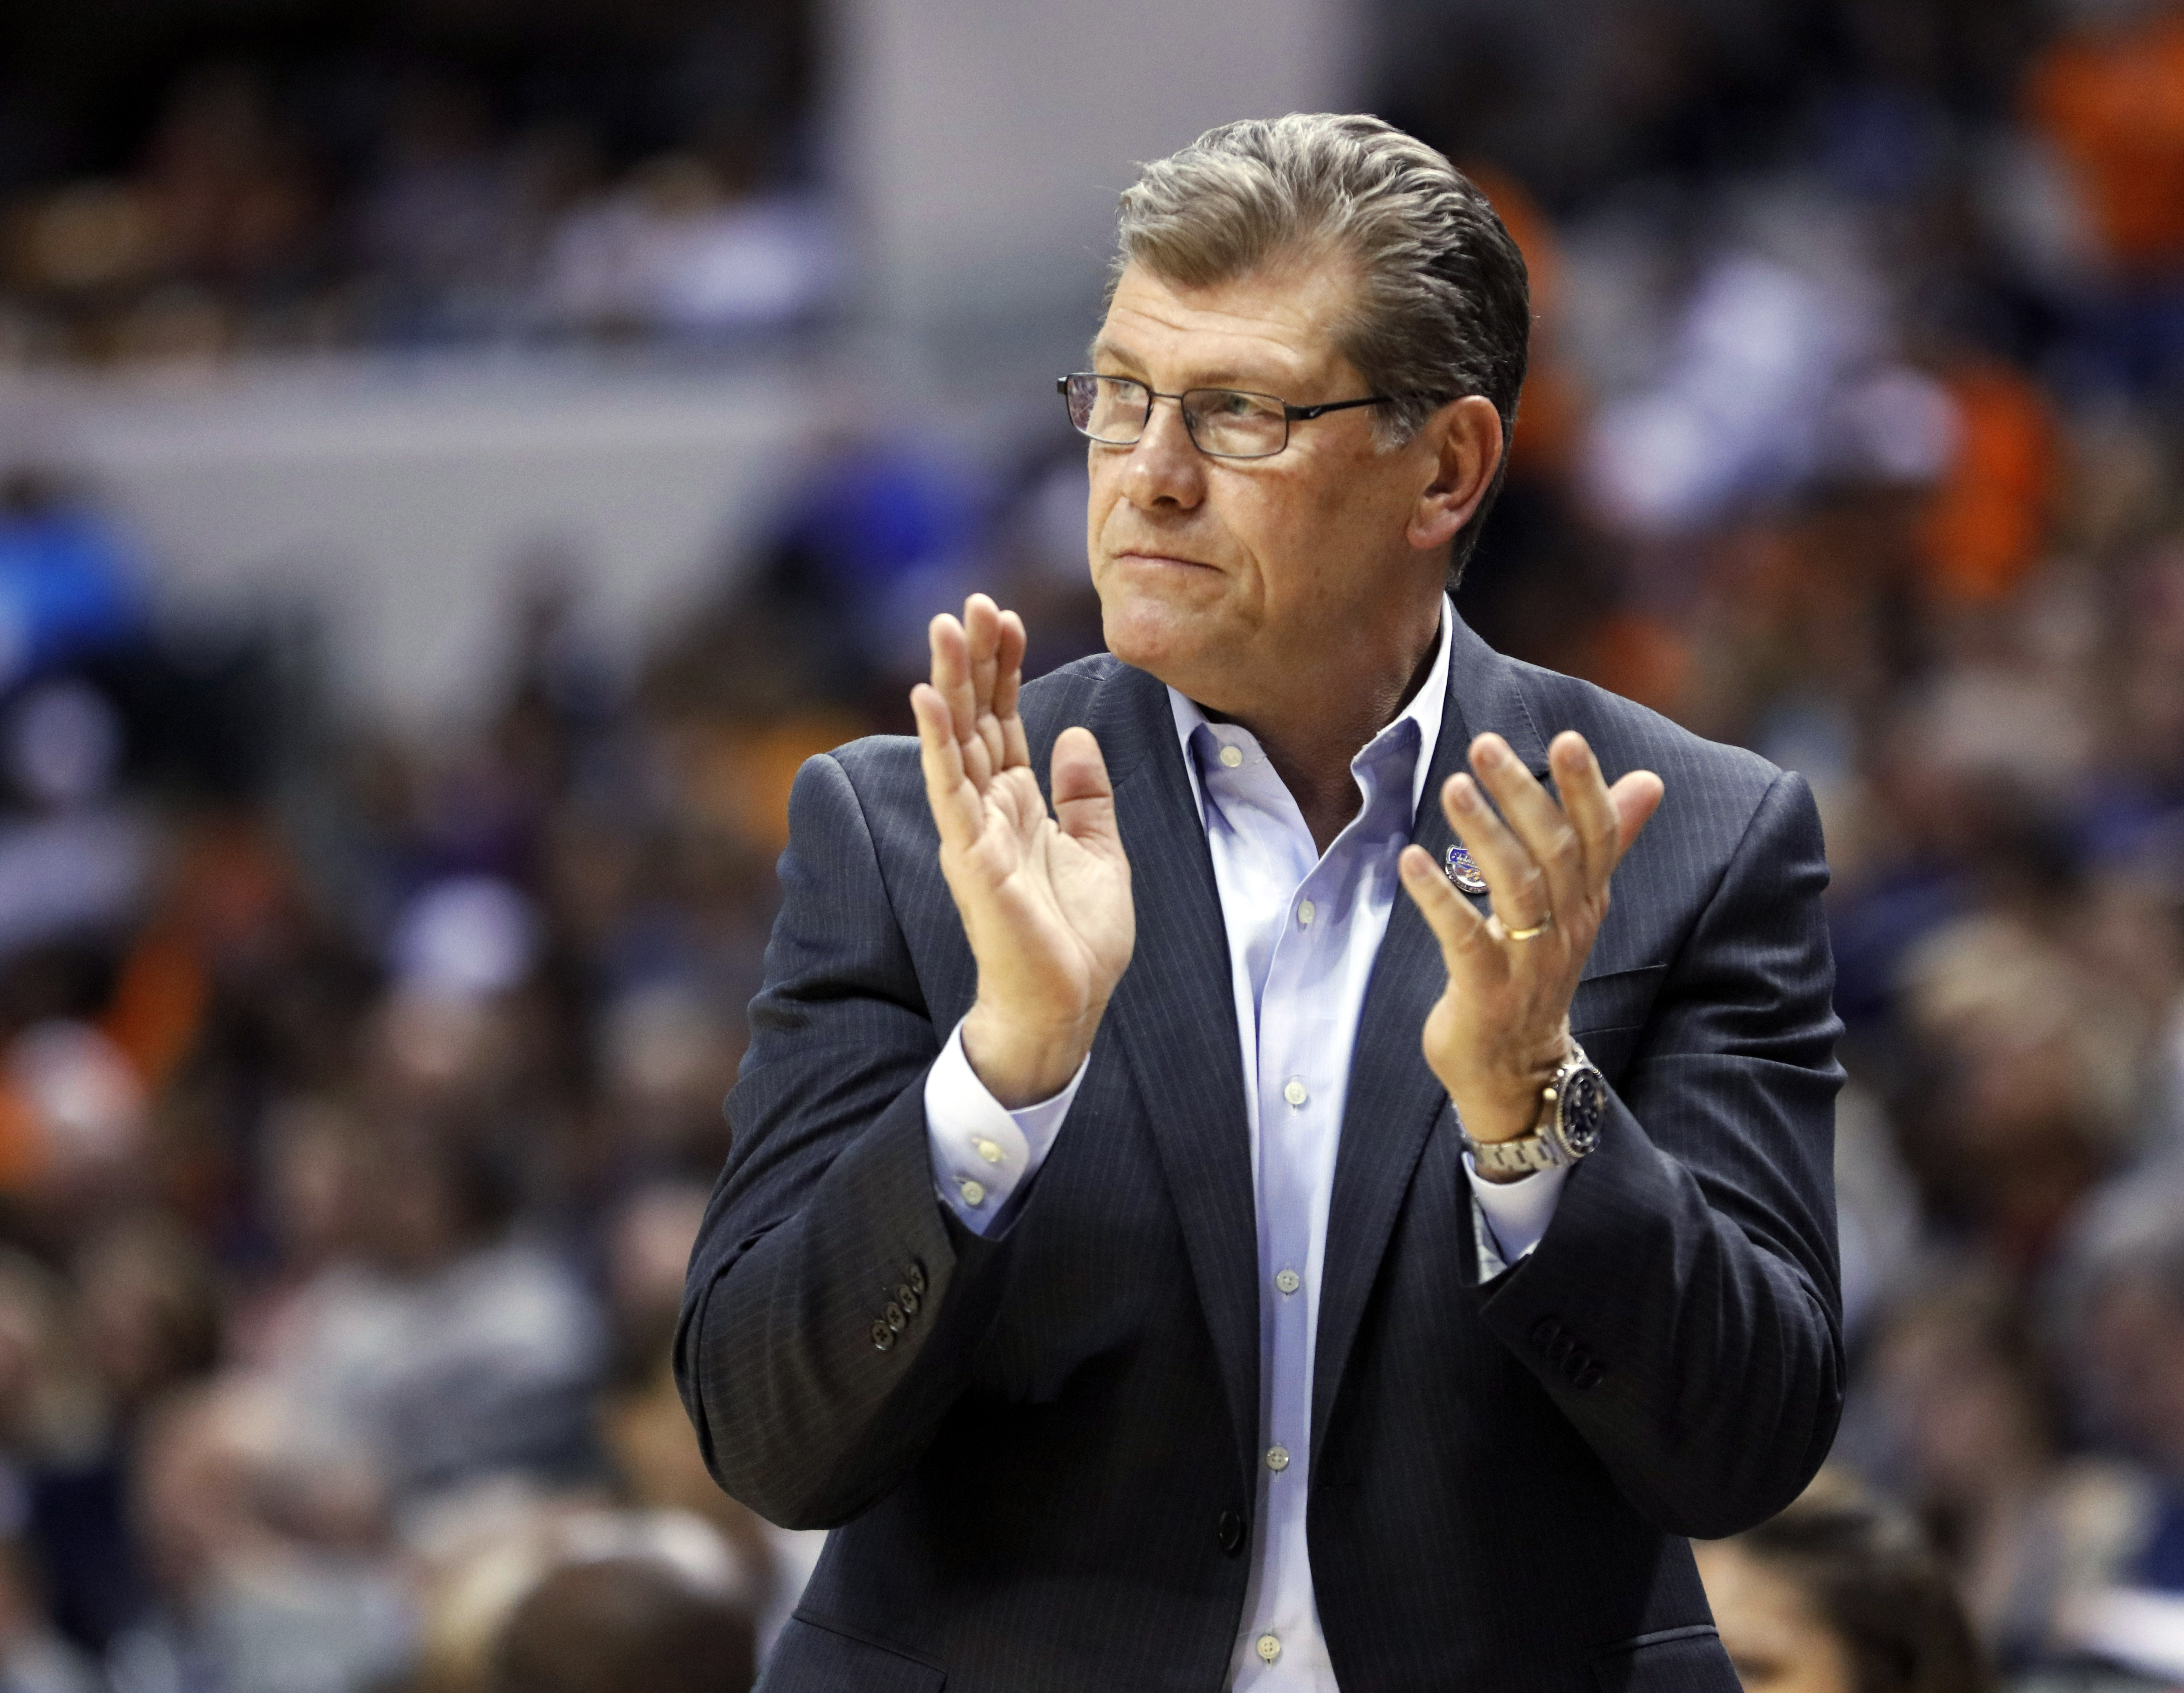 FILE - In this April 3, 2016, file photo, Connecticut coach Geno Auriemma cheers for his team during the second half of a semifinal against Oregon State, at the women's Final Four in the NCAA college basketball tournament in Indianapolis. Auriemma spent a